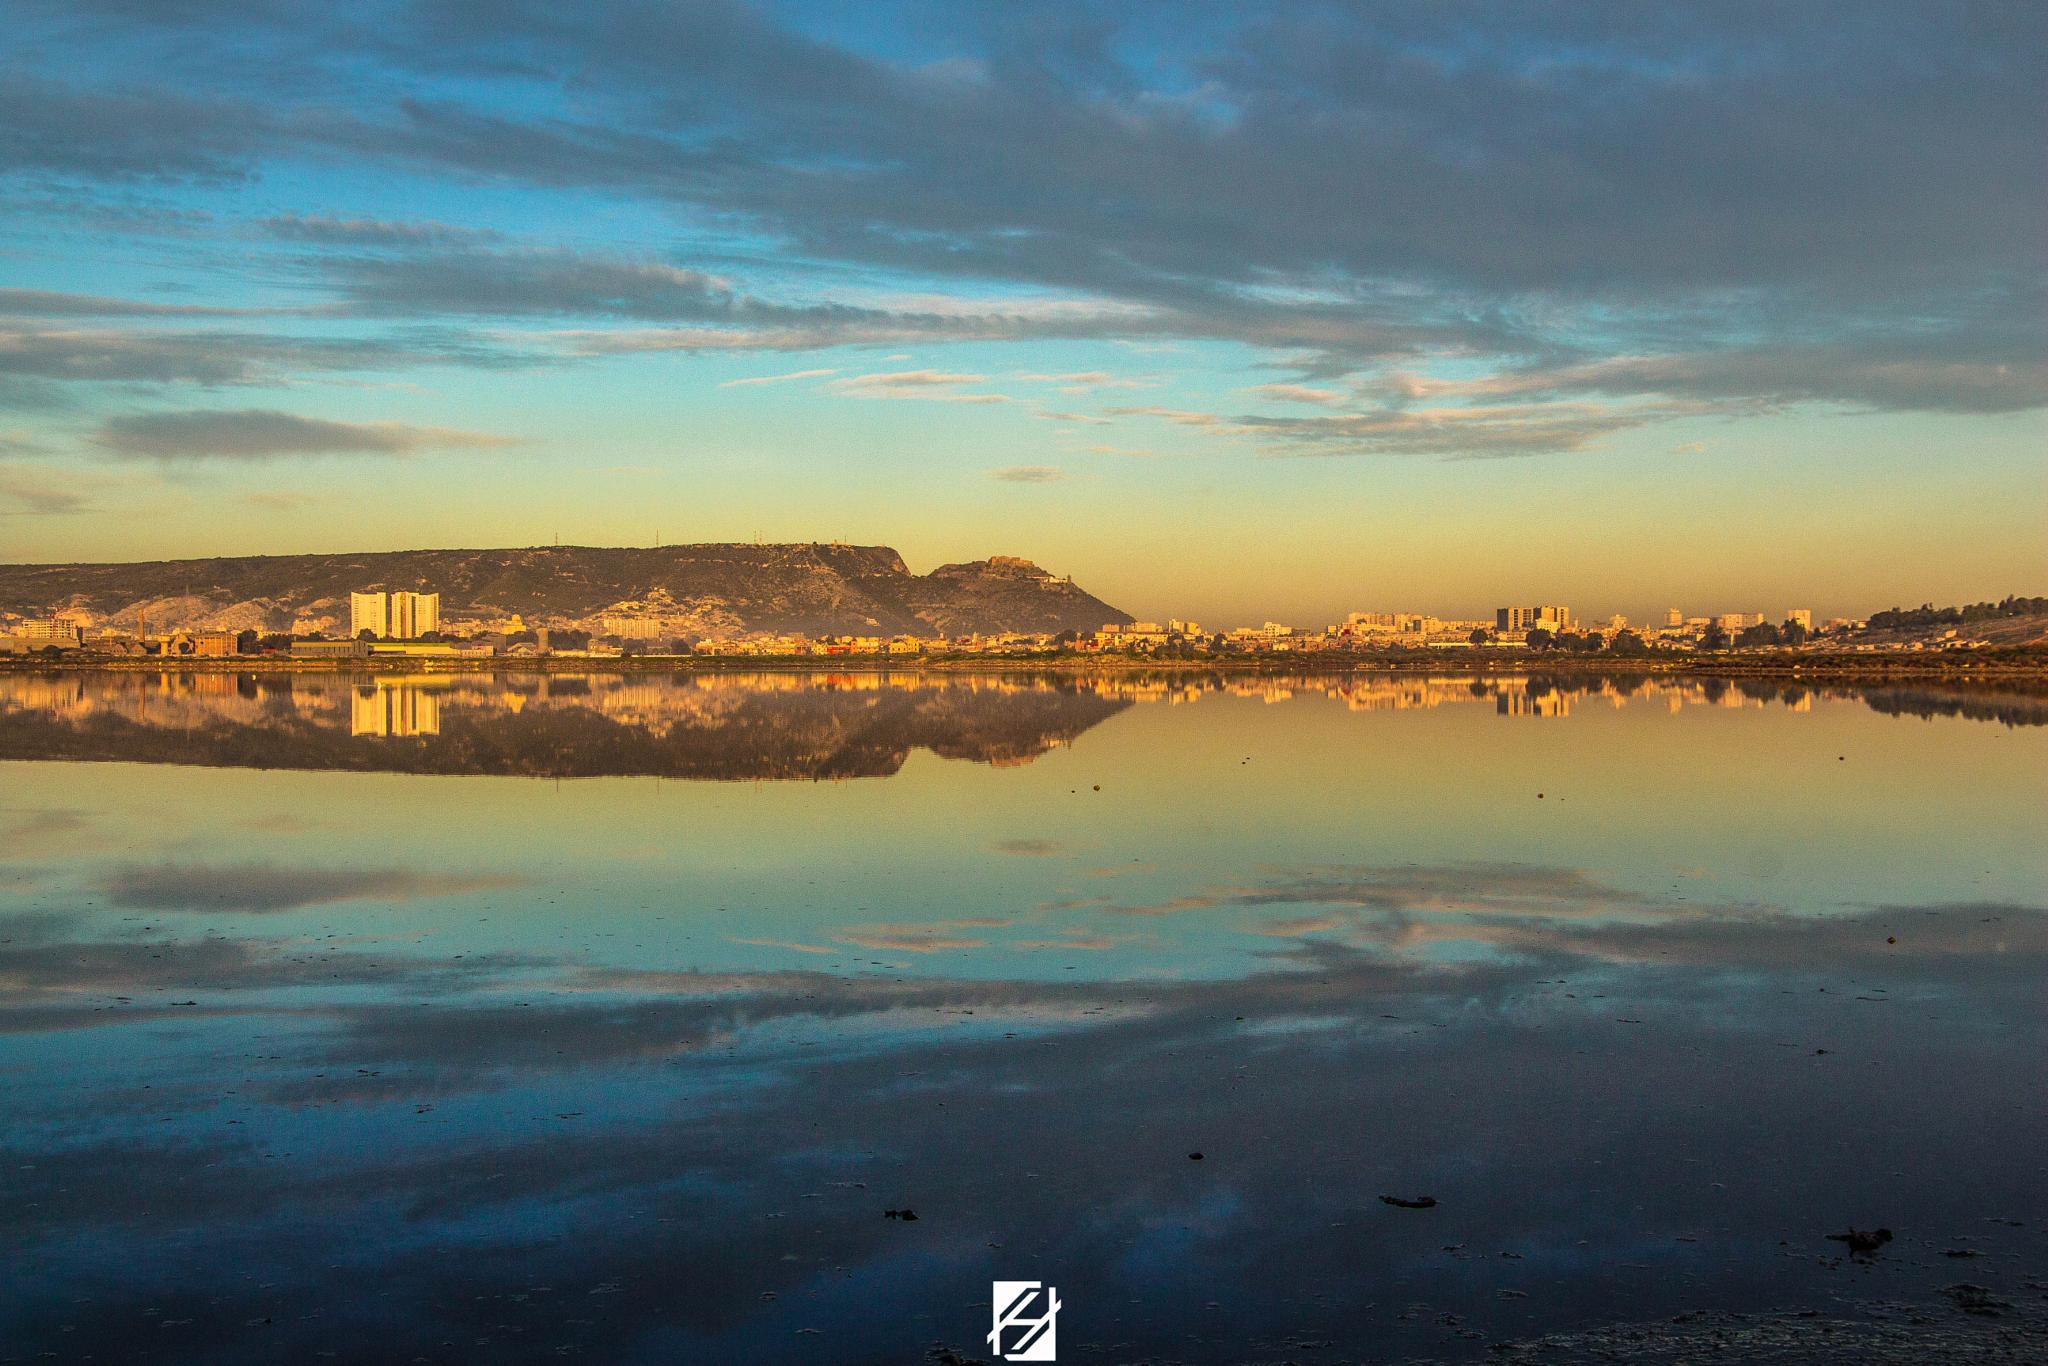 Water Mirror by Hichemou Photography